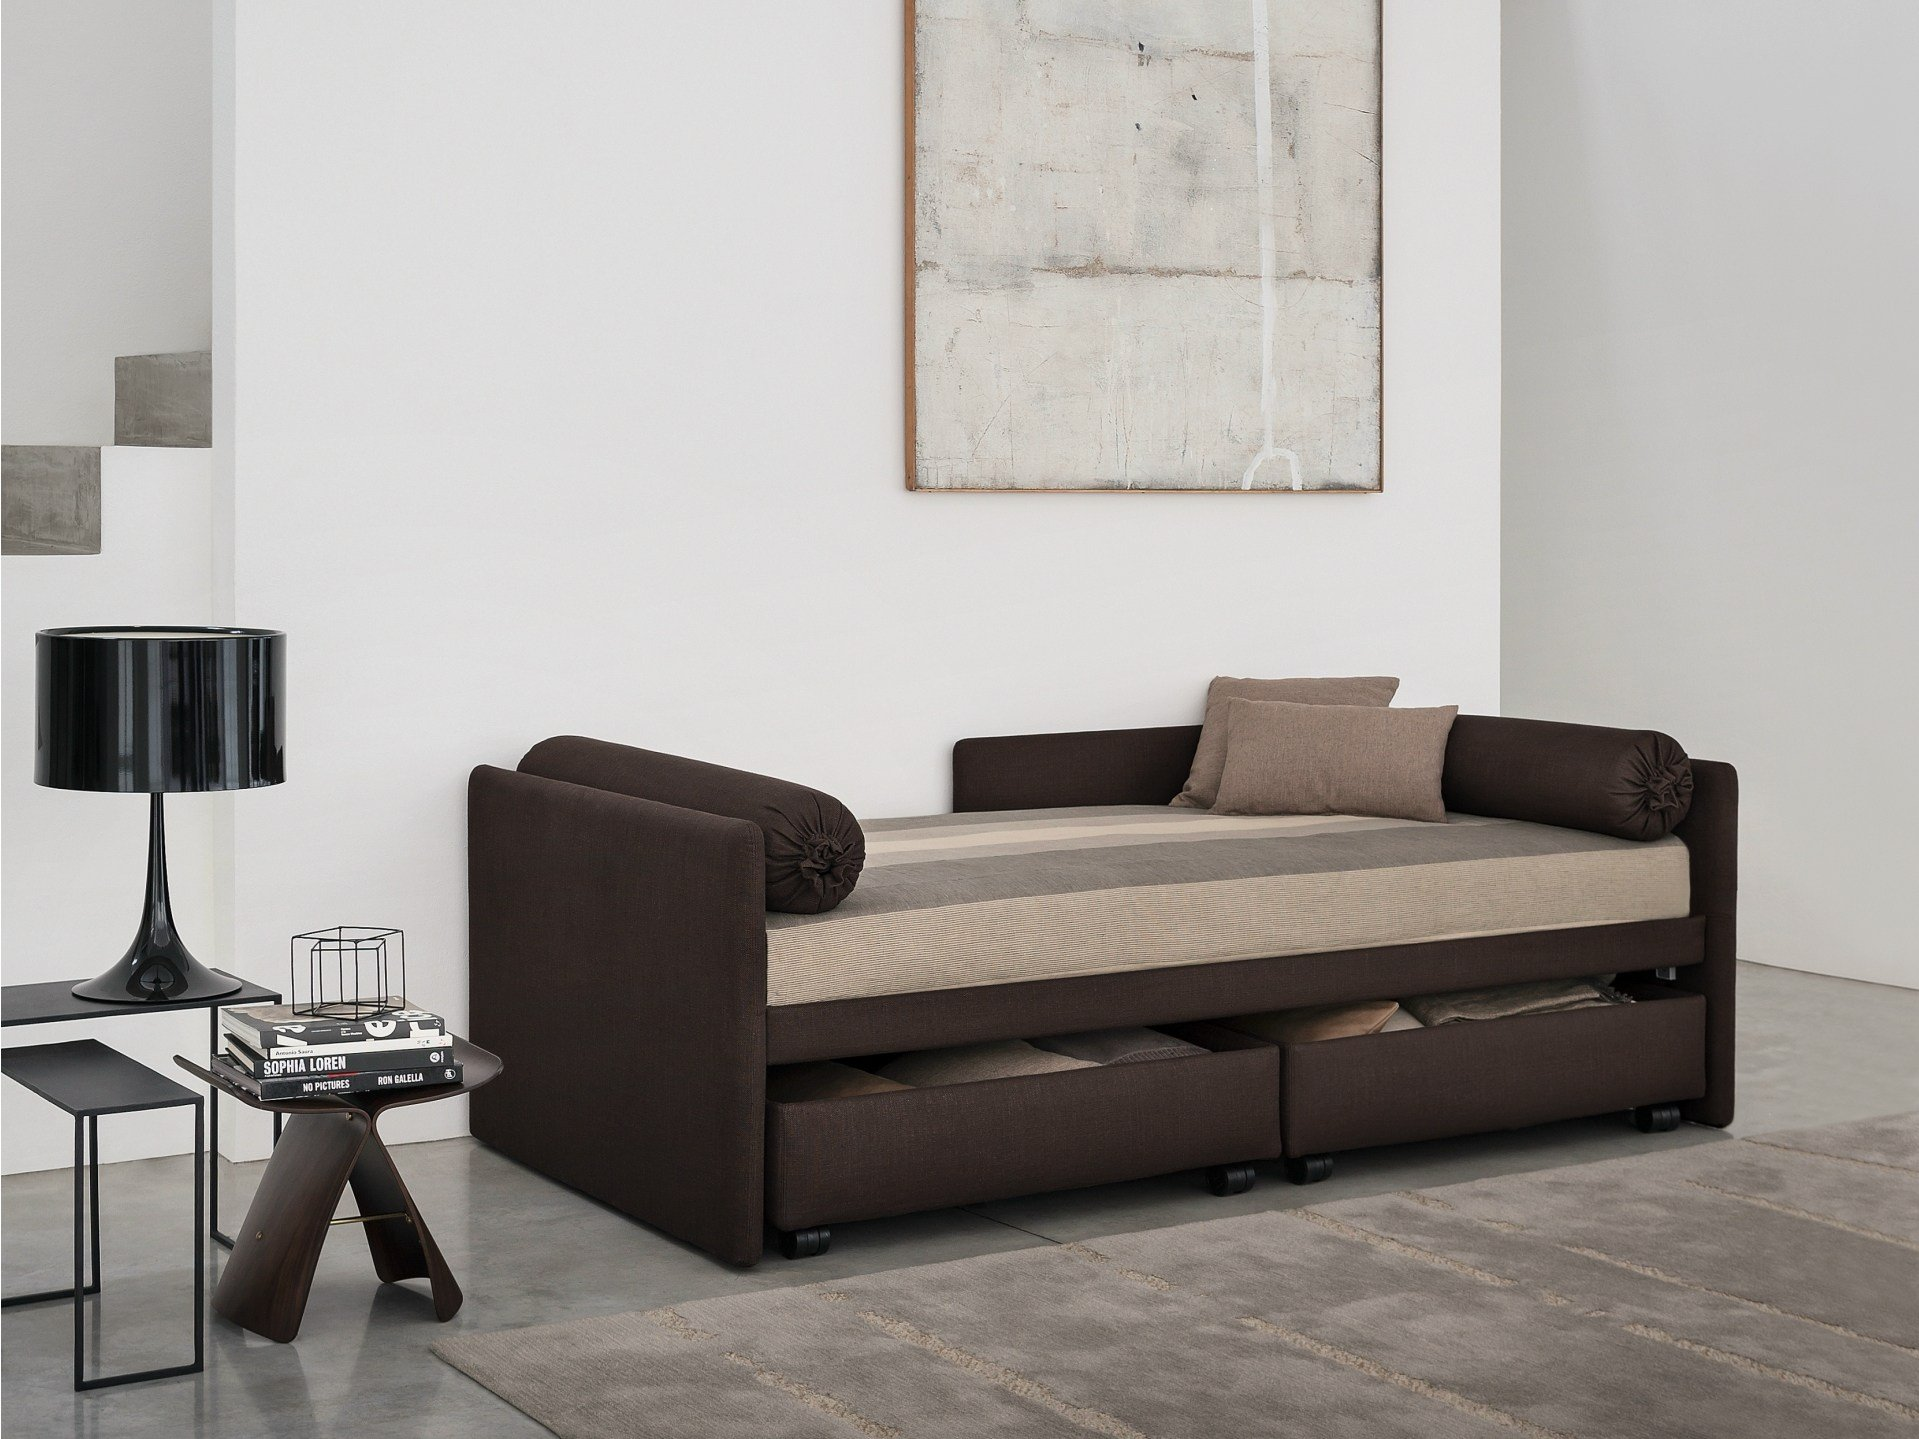 Superb Fabric Bed Day Bed Duetto By Flou Part 4